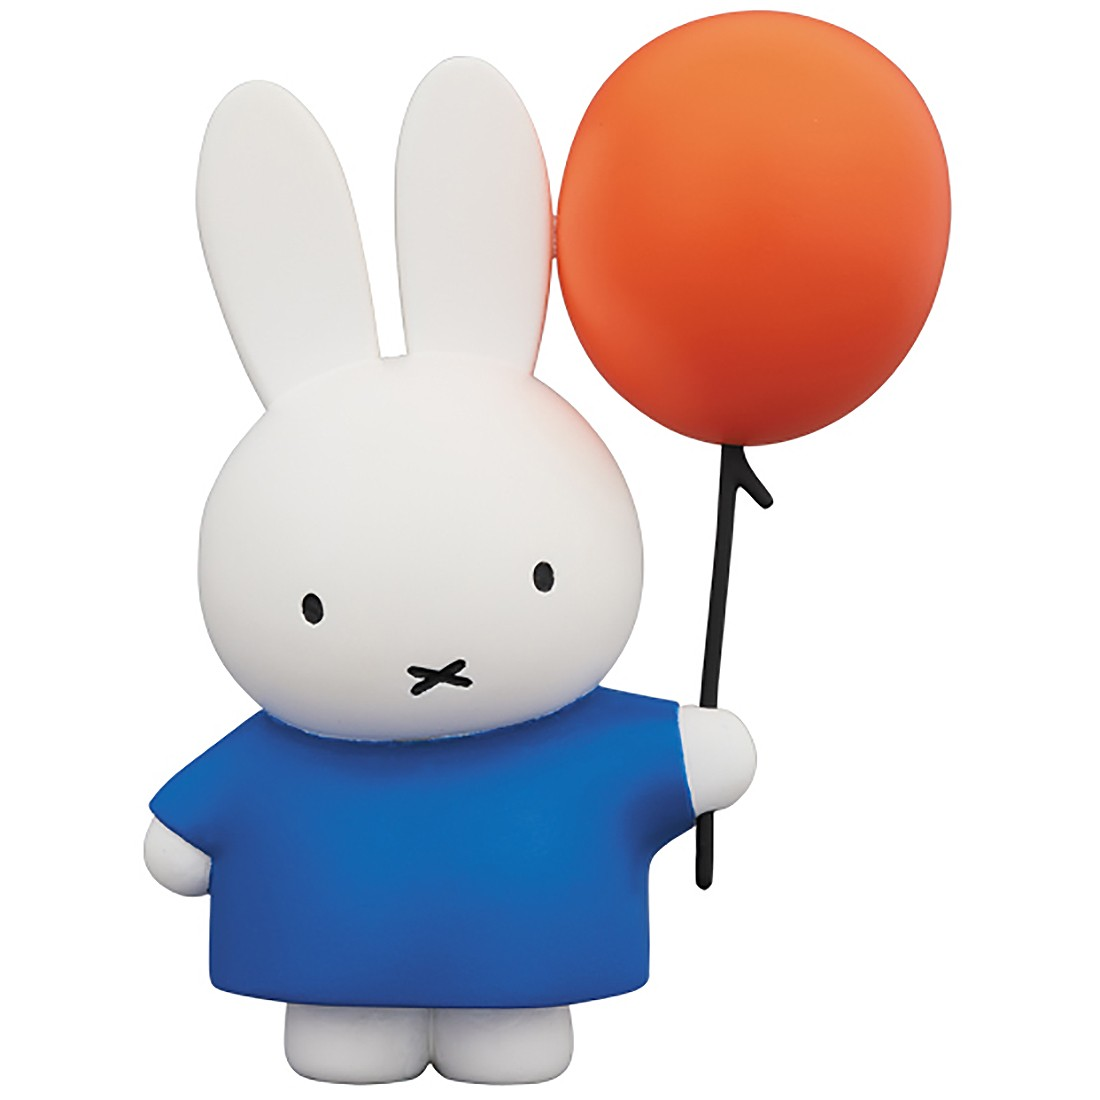 PREORDER - Medicom UDF Dick Bruna Series 3 Miffy With A Balloon Ultra Detail Figure (blue)